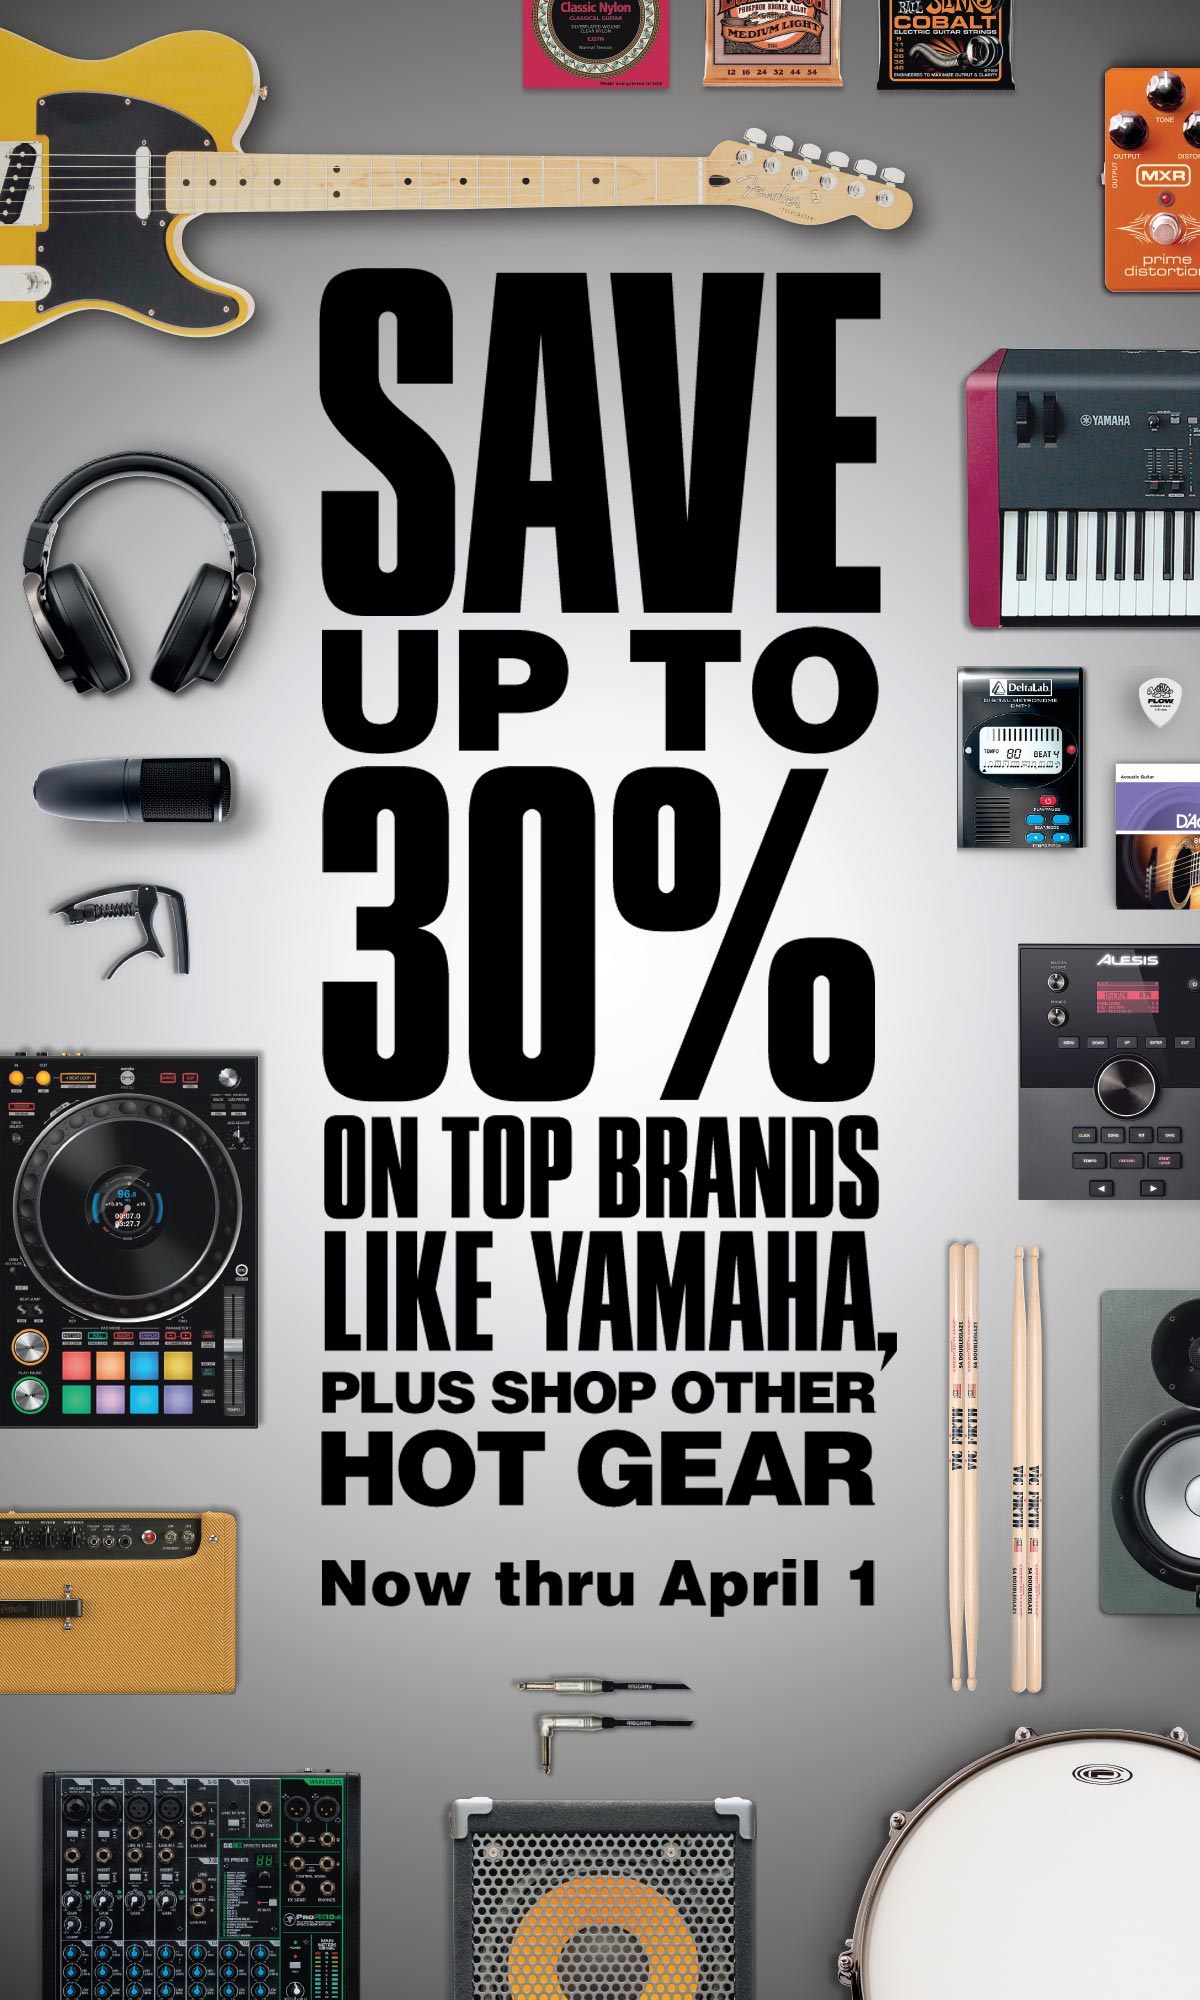 Save up to 30% on top brands like YAMAHA, plus shop other hot gear, Now thru April 1.